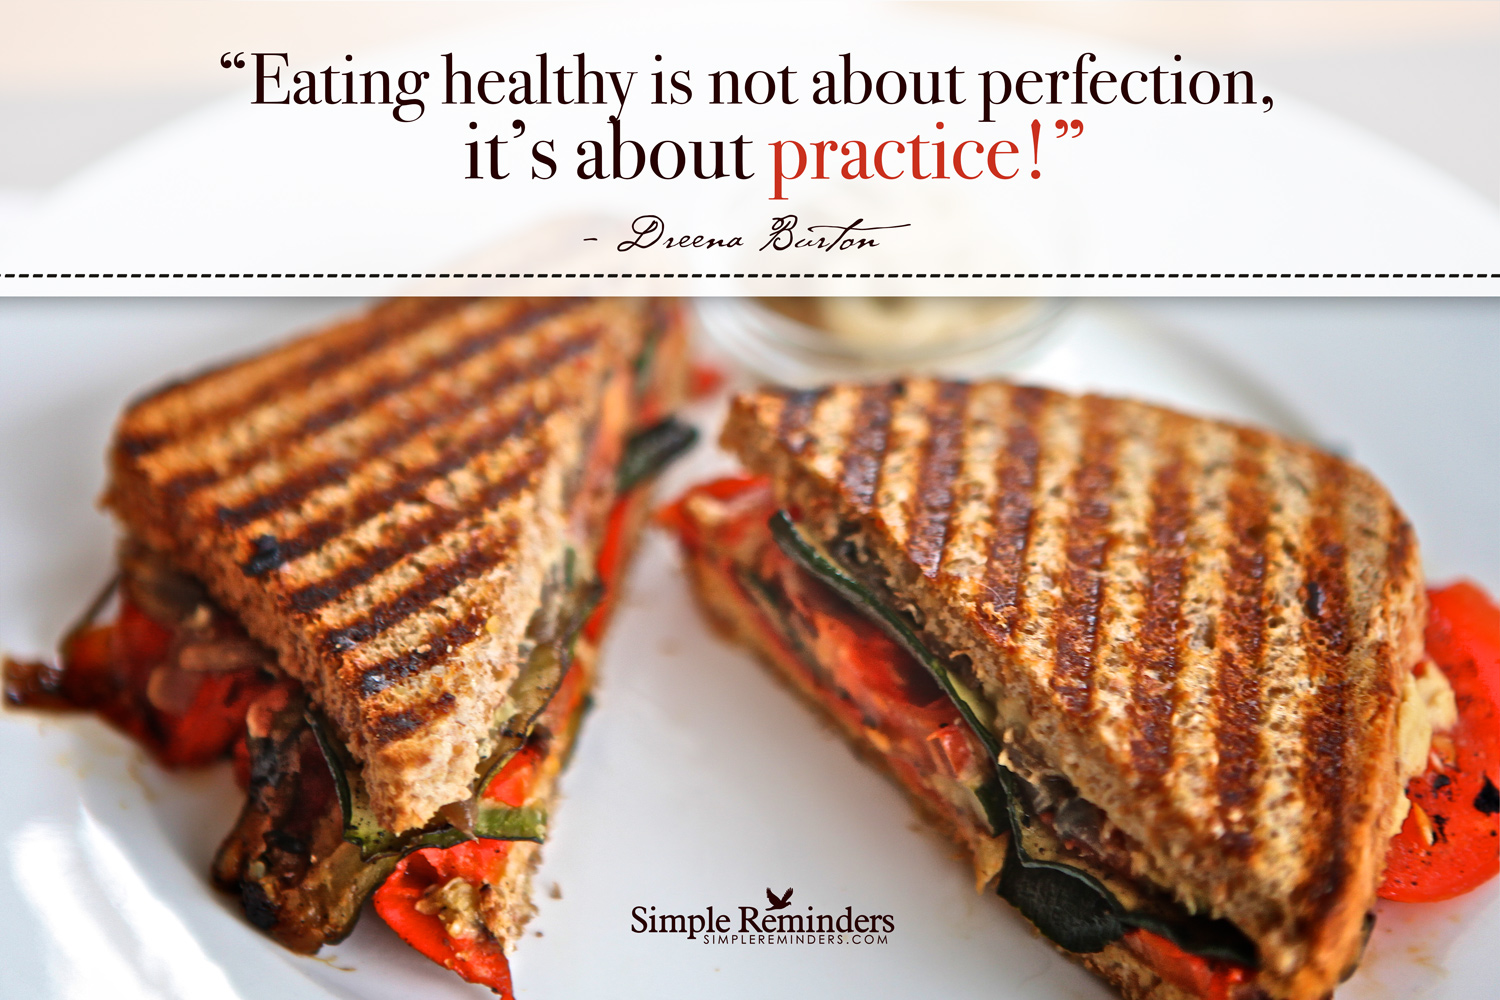 Eating healthy is not about perfection, it's about practice!